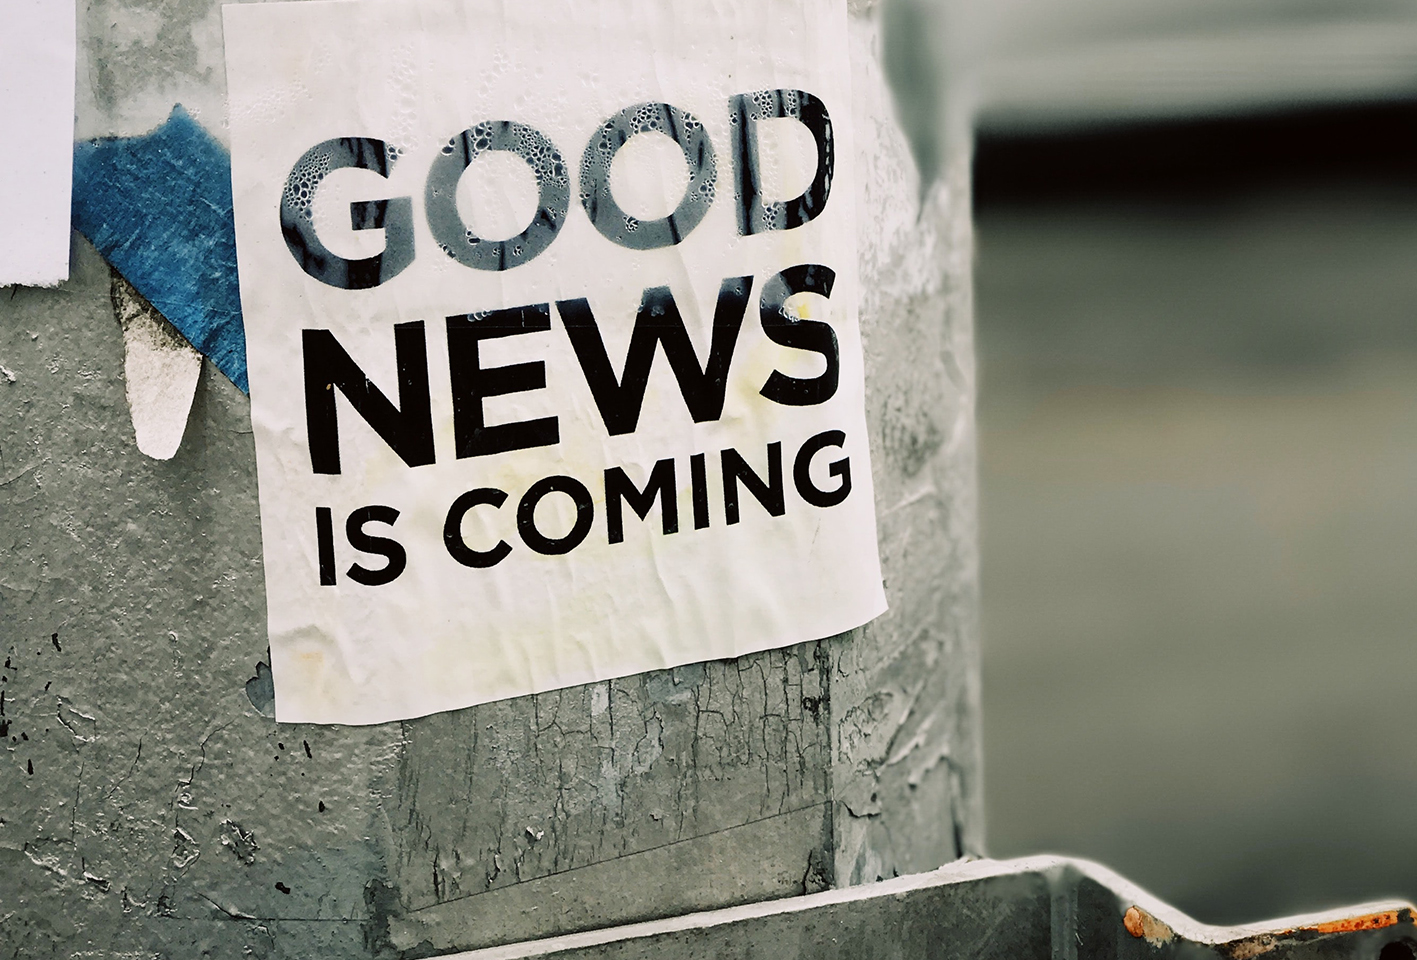 Poster on pole in street saying Good News is Coming